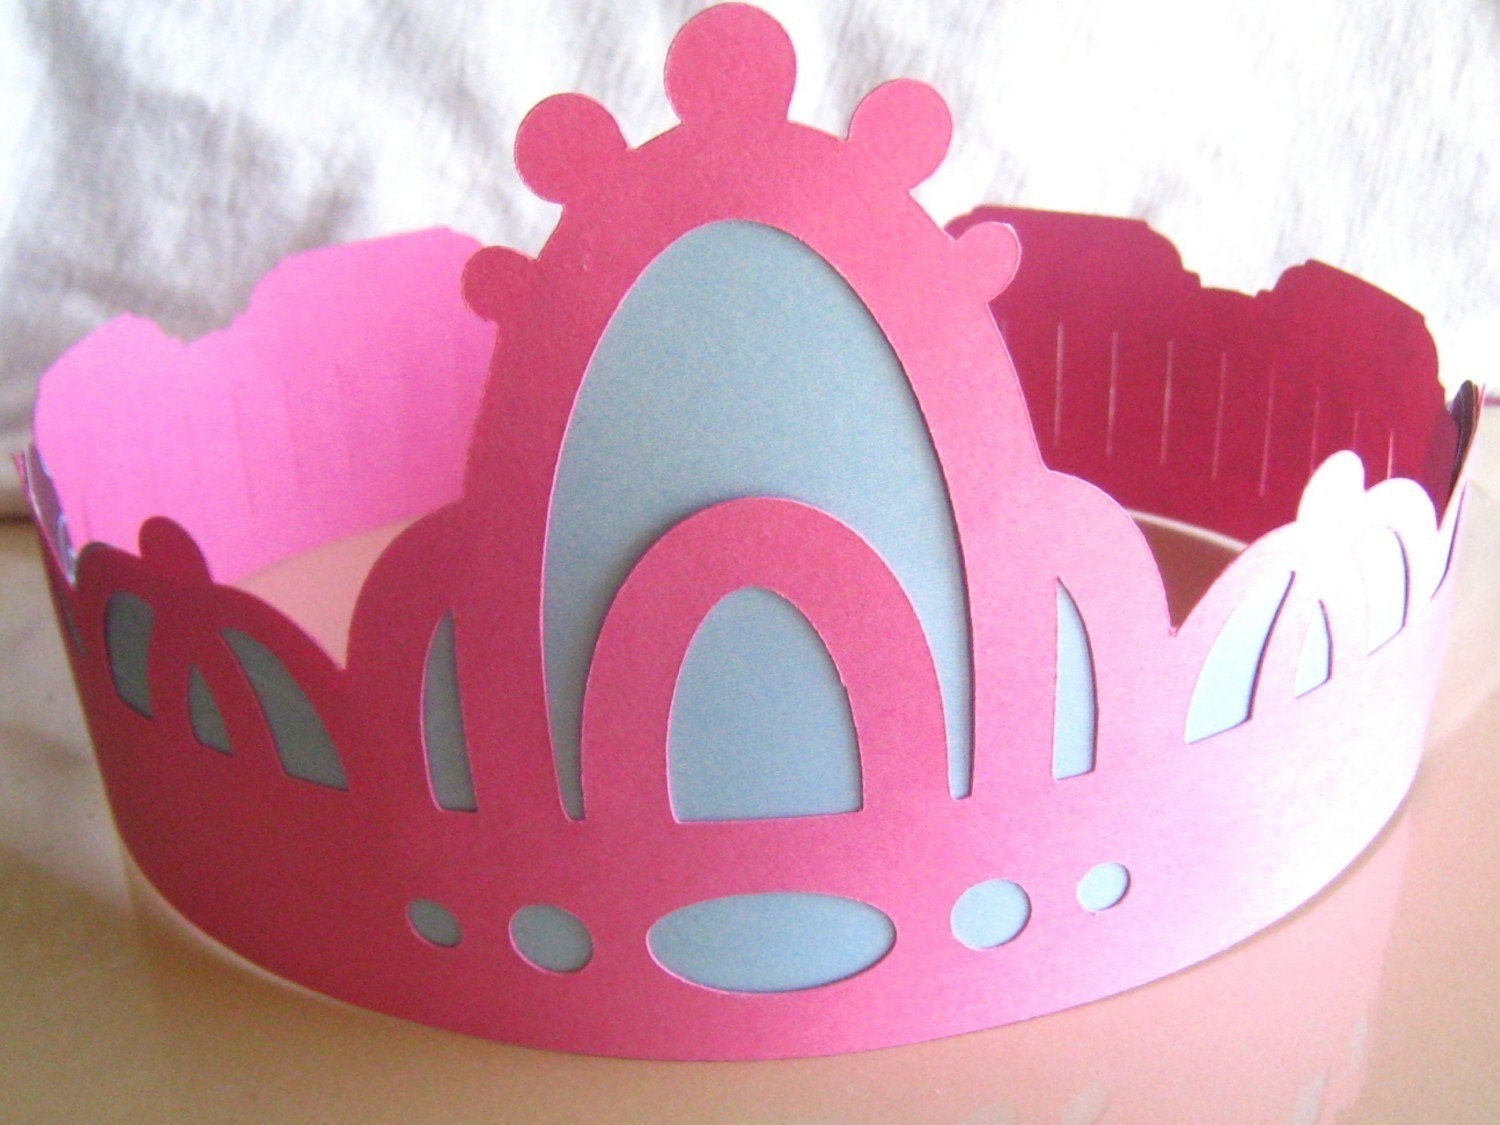 Paper Crowns for a Prince or Princess by Socials on Etsy